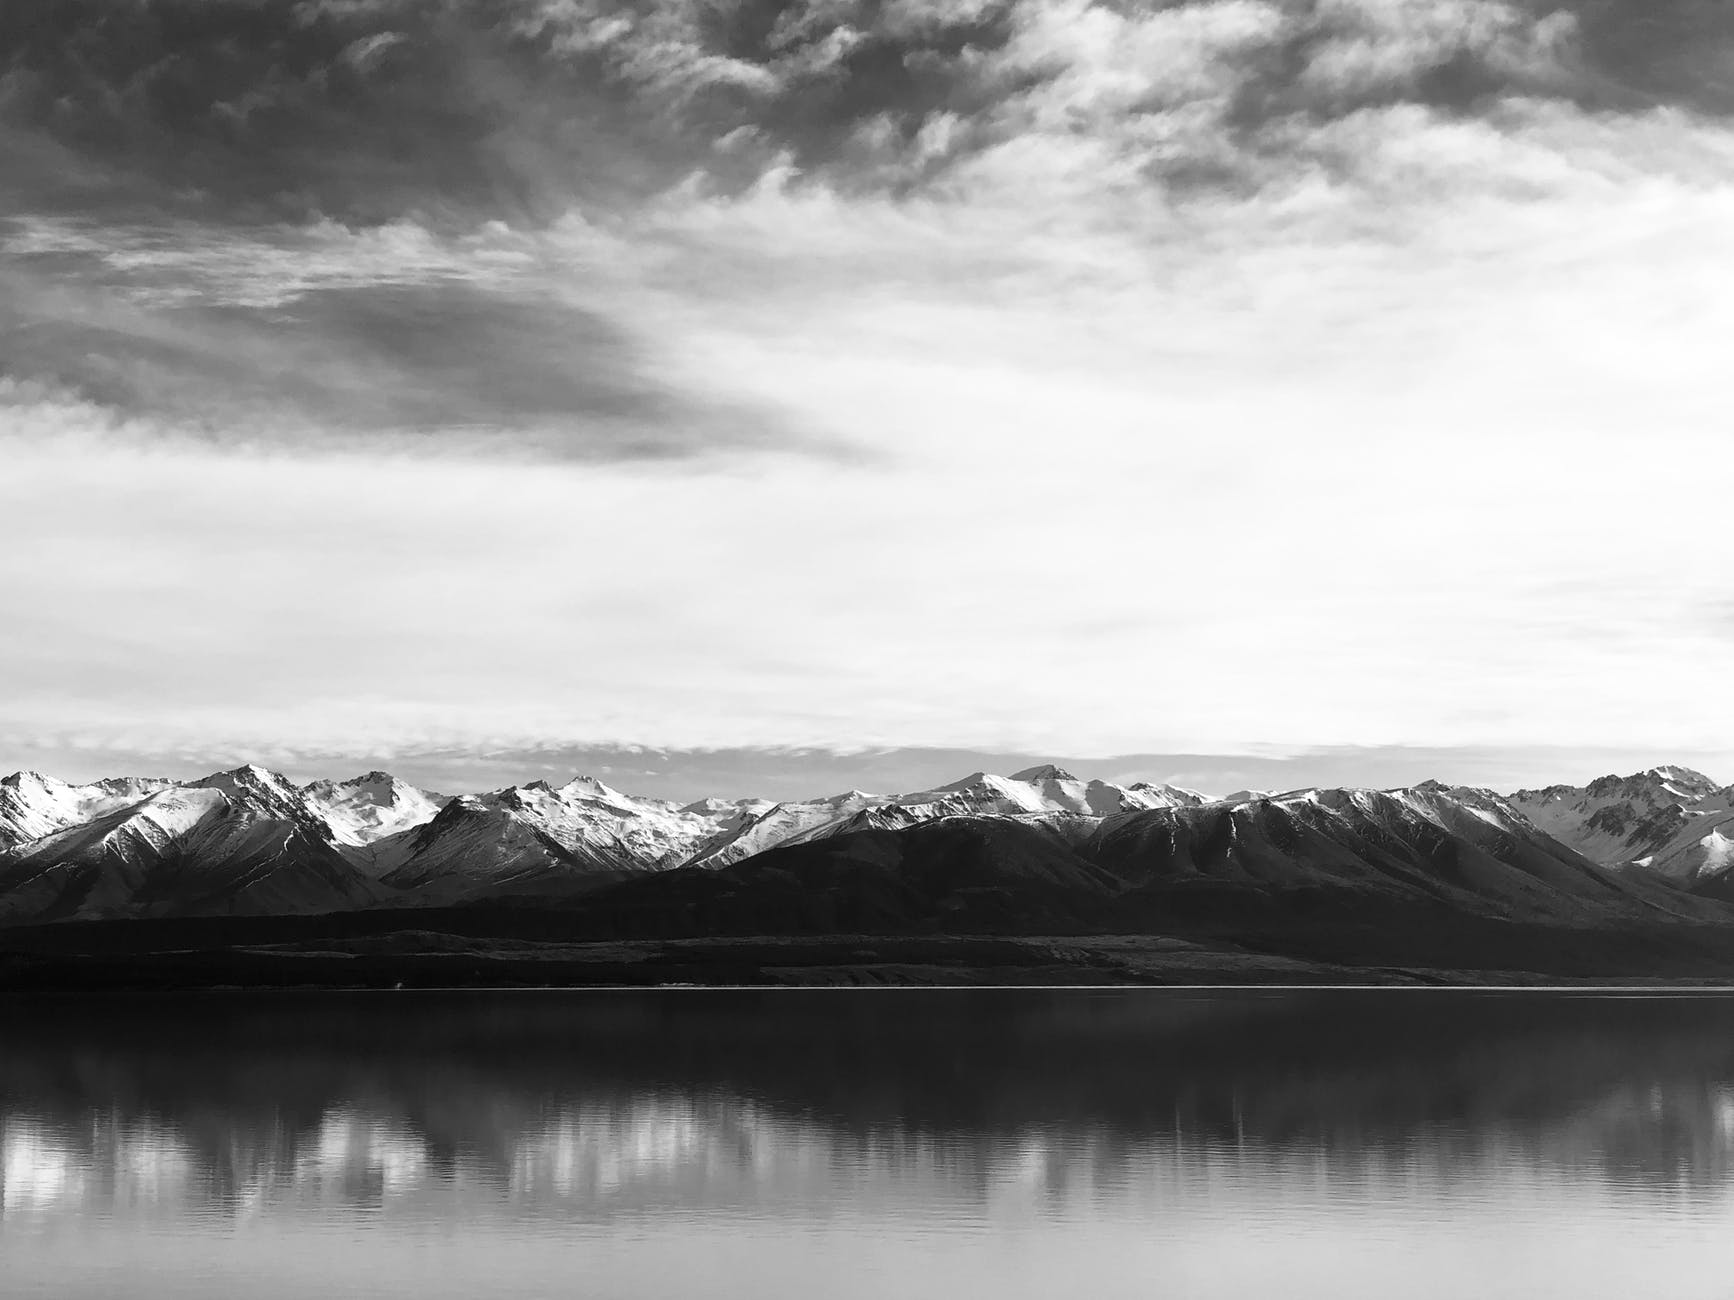 monochrome photography of mountains